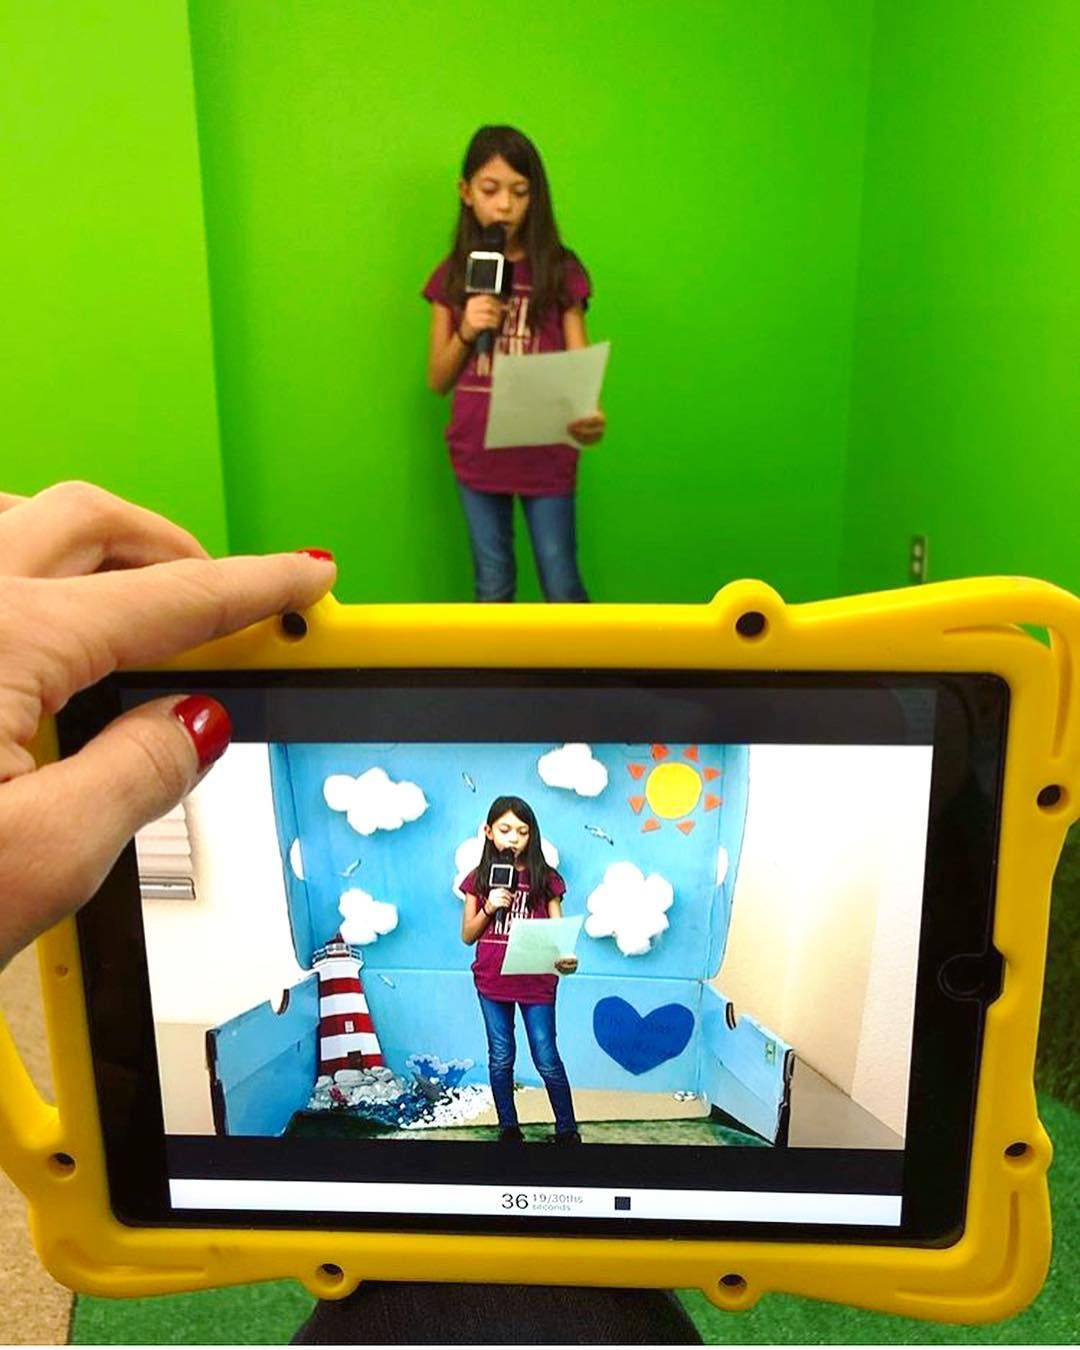 Katie Curtis Redlands Usd On Instagram Green Screen Fun If You Haven T Tried A Green Screen Proj Greenscreen Green Screen Photography Kids Workshop